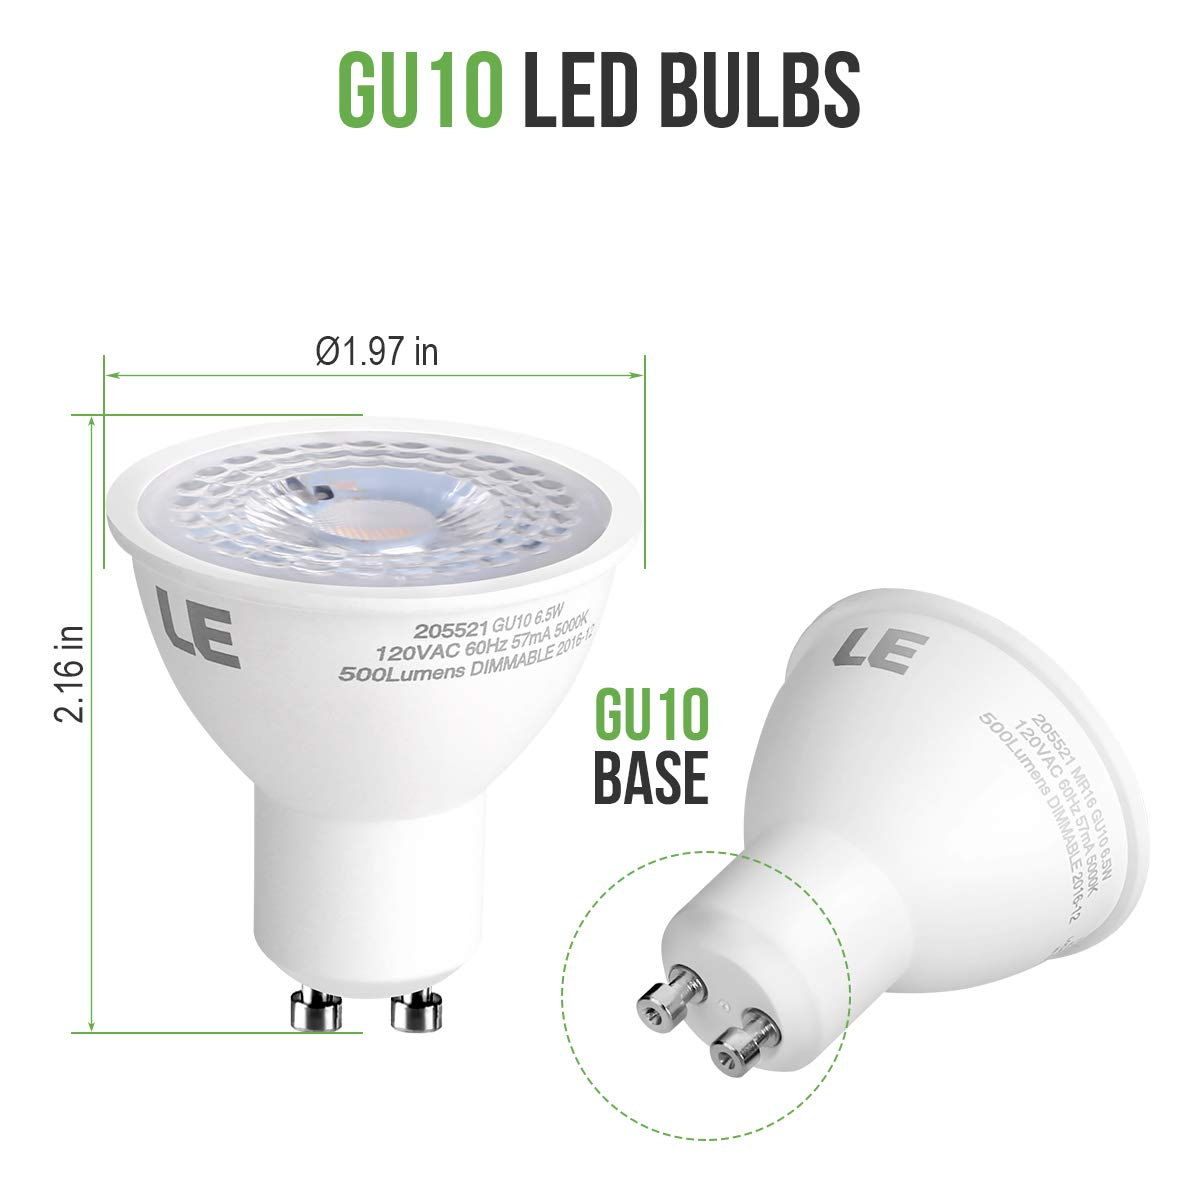 Le Mr16 Gu10 Dimmable Light Bulbs 50w Halogen Equivalent 65 Wire Inside The Bulb Called A Filament Lights 65w 500lm 38 Beam Angle Spotlight Daylight White 5000k Led Recessed Lighting